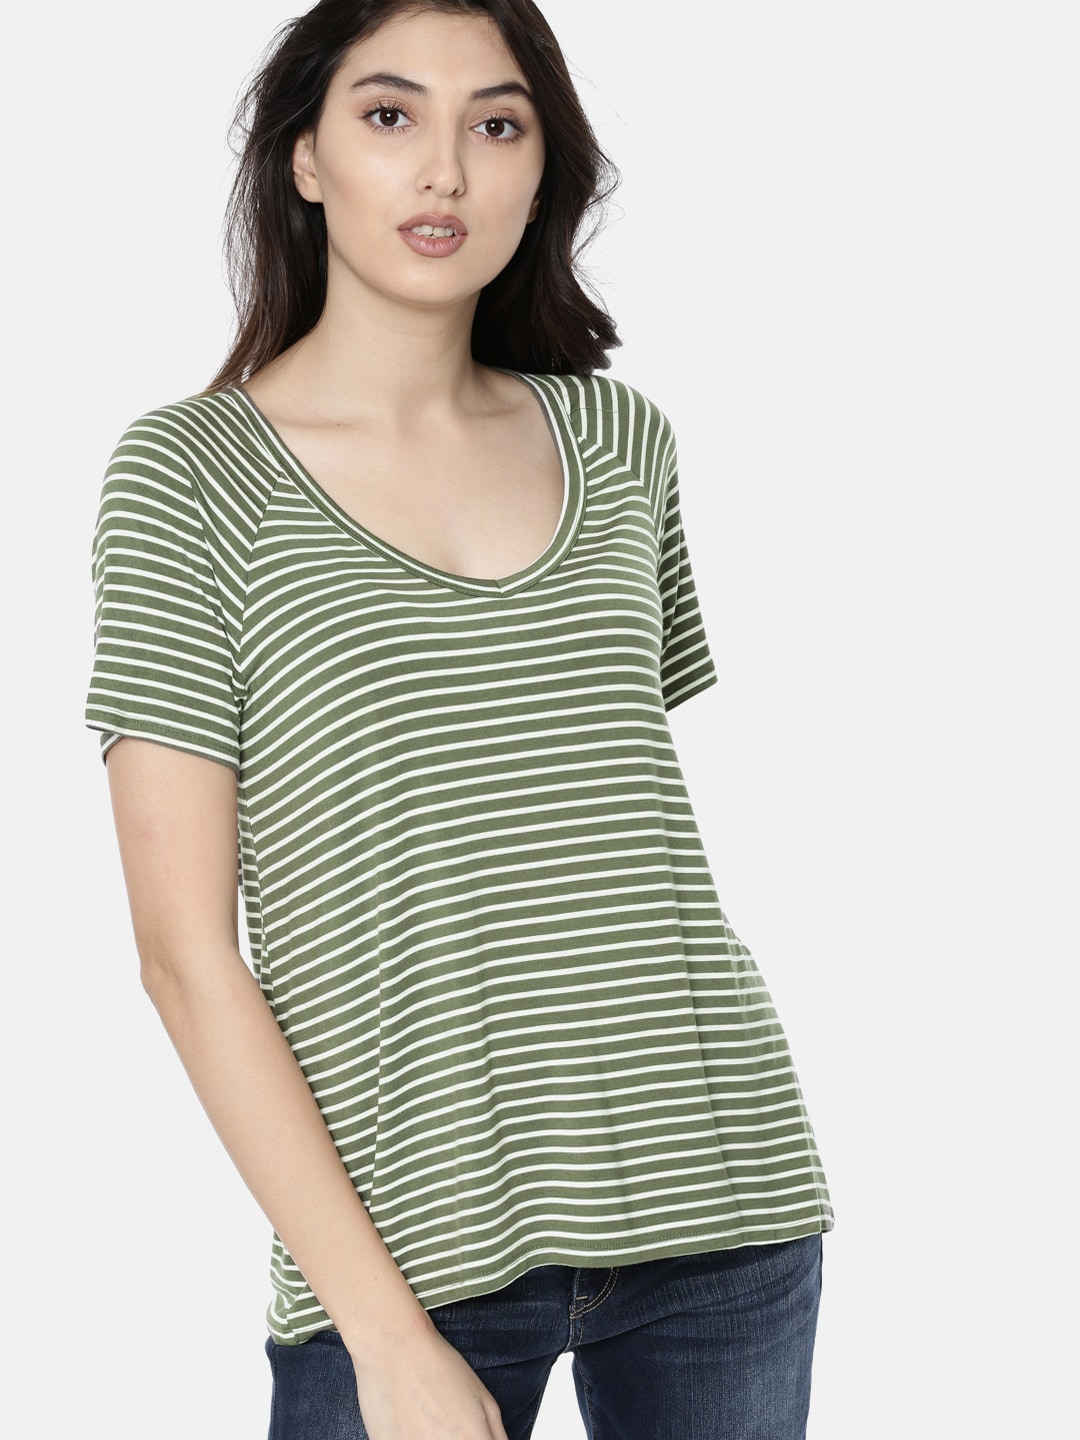 ef06a9dd AMERICAN EAGLE OUTFITTERS Women Olive Green & White Striped V-Neck T-shirt